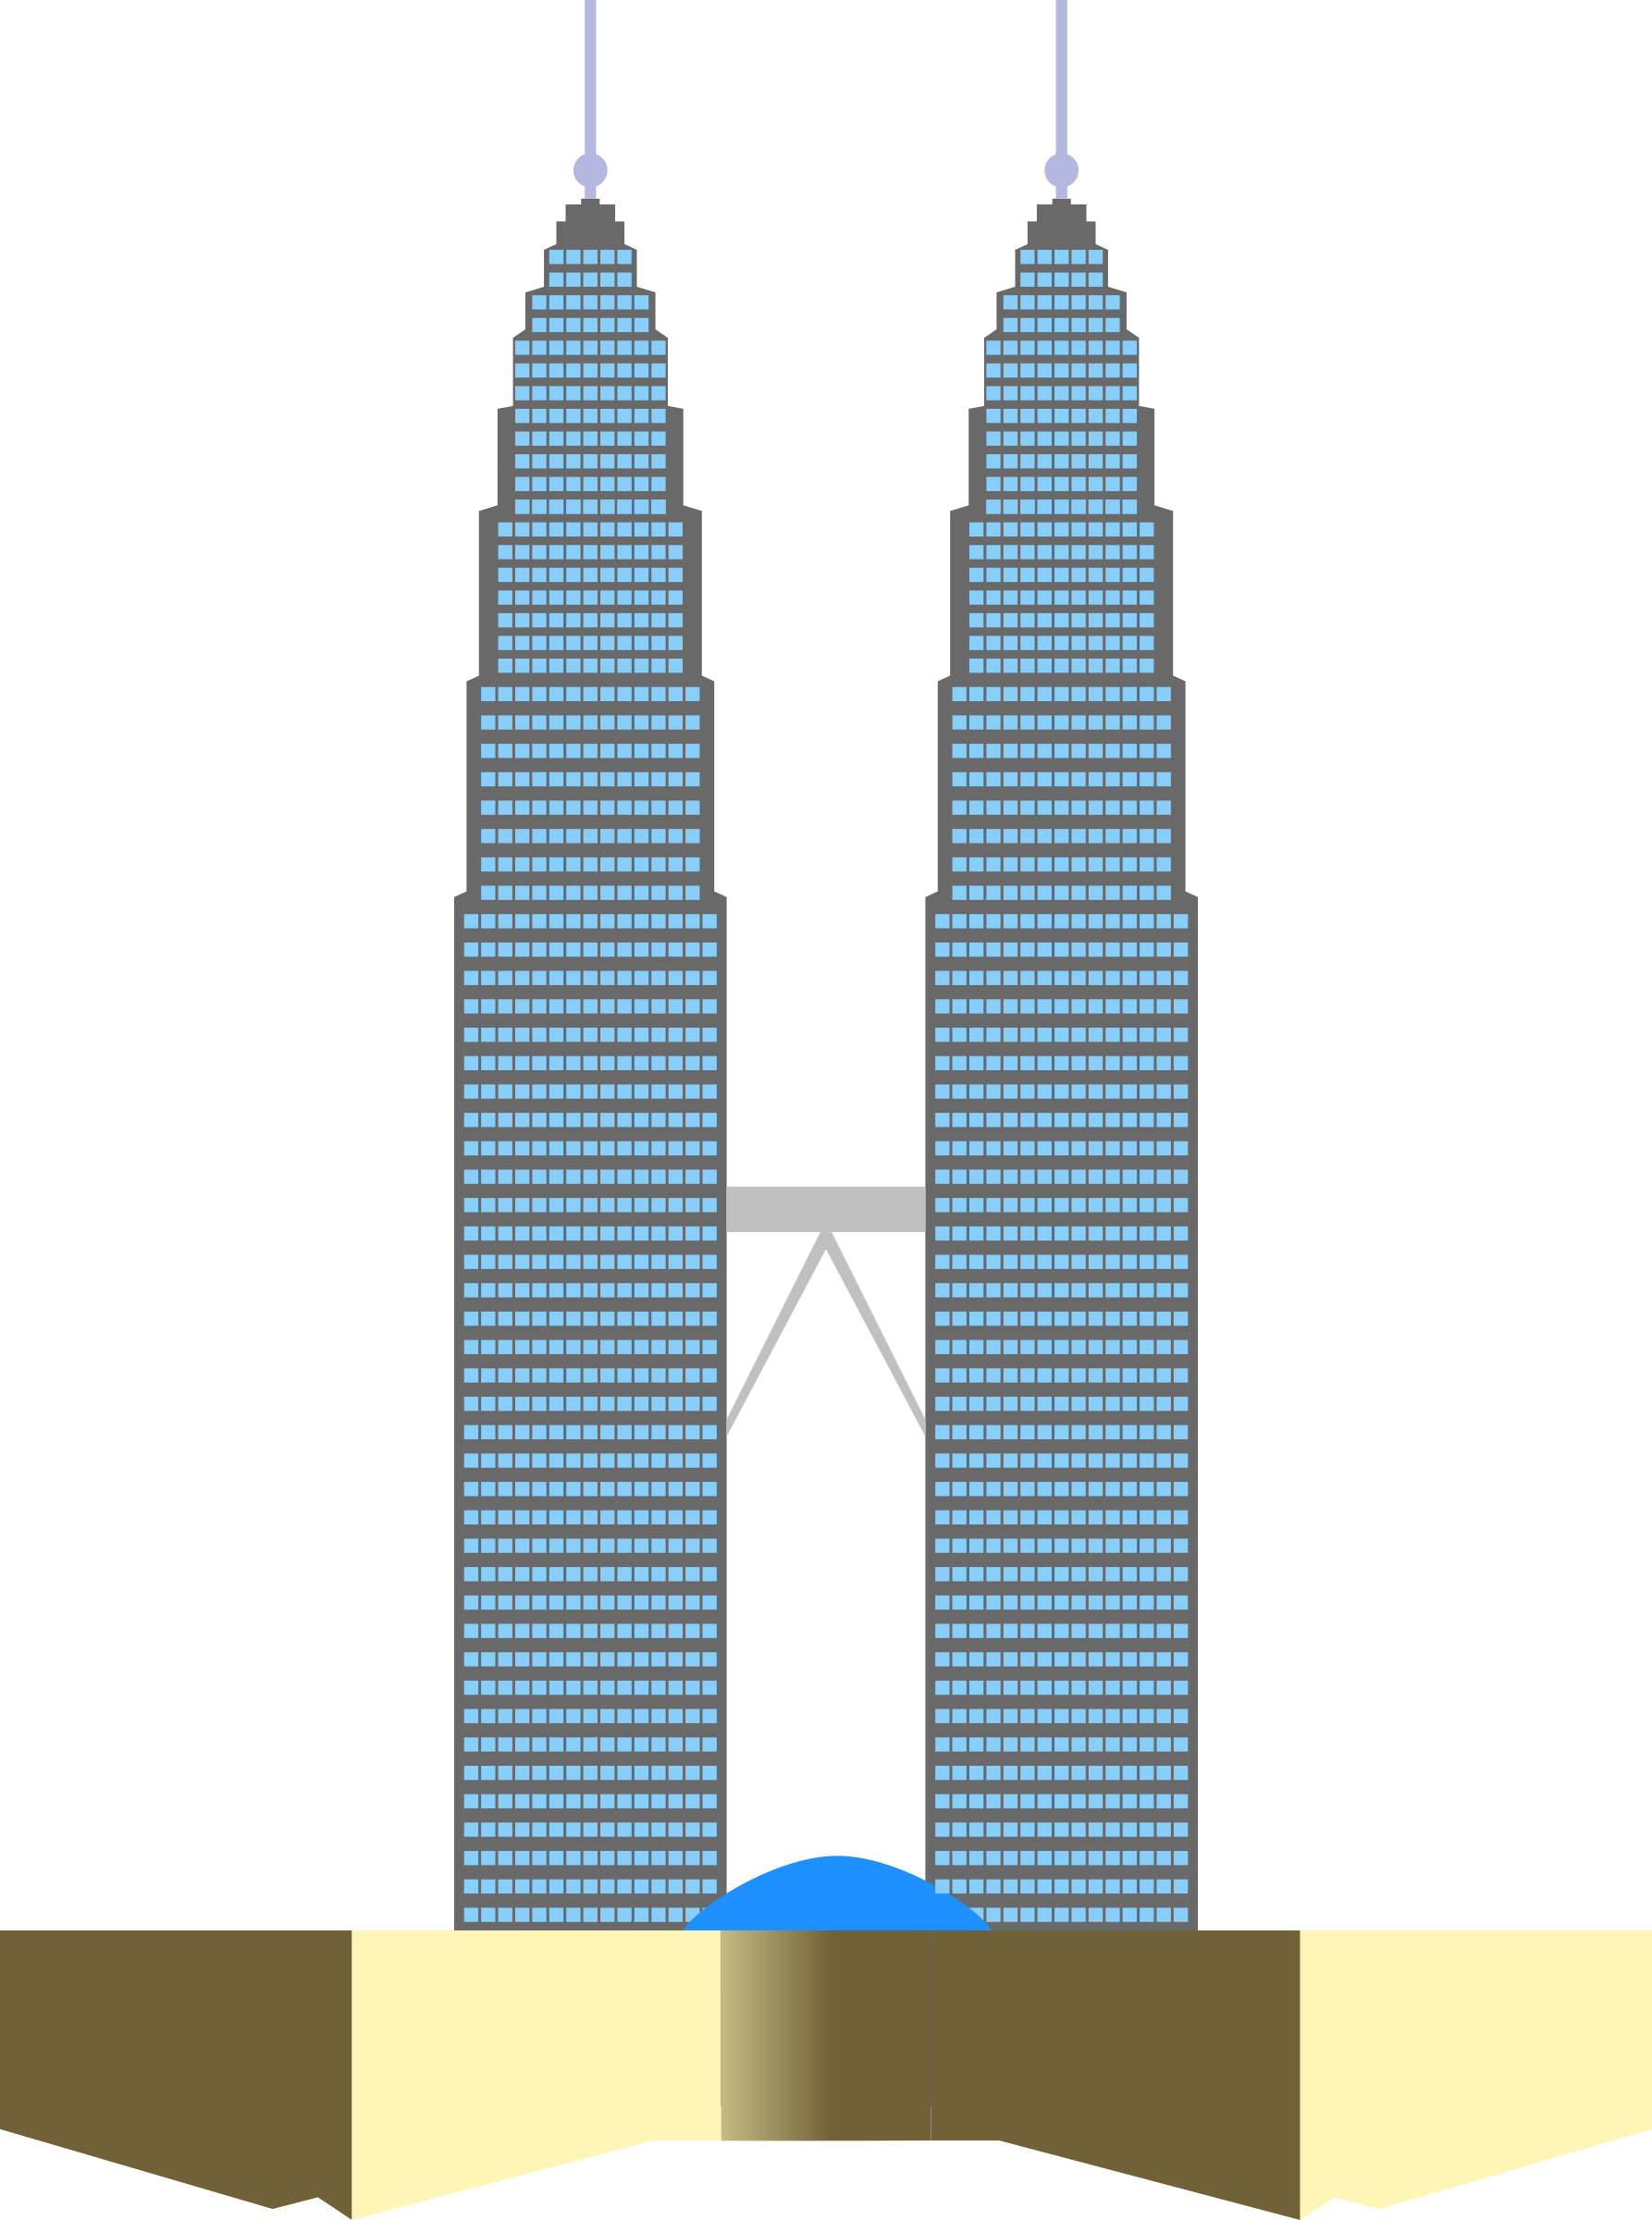 Tower clipart twin towers #2